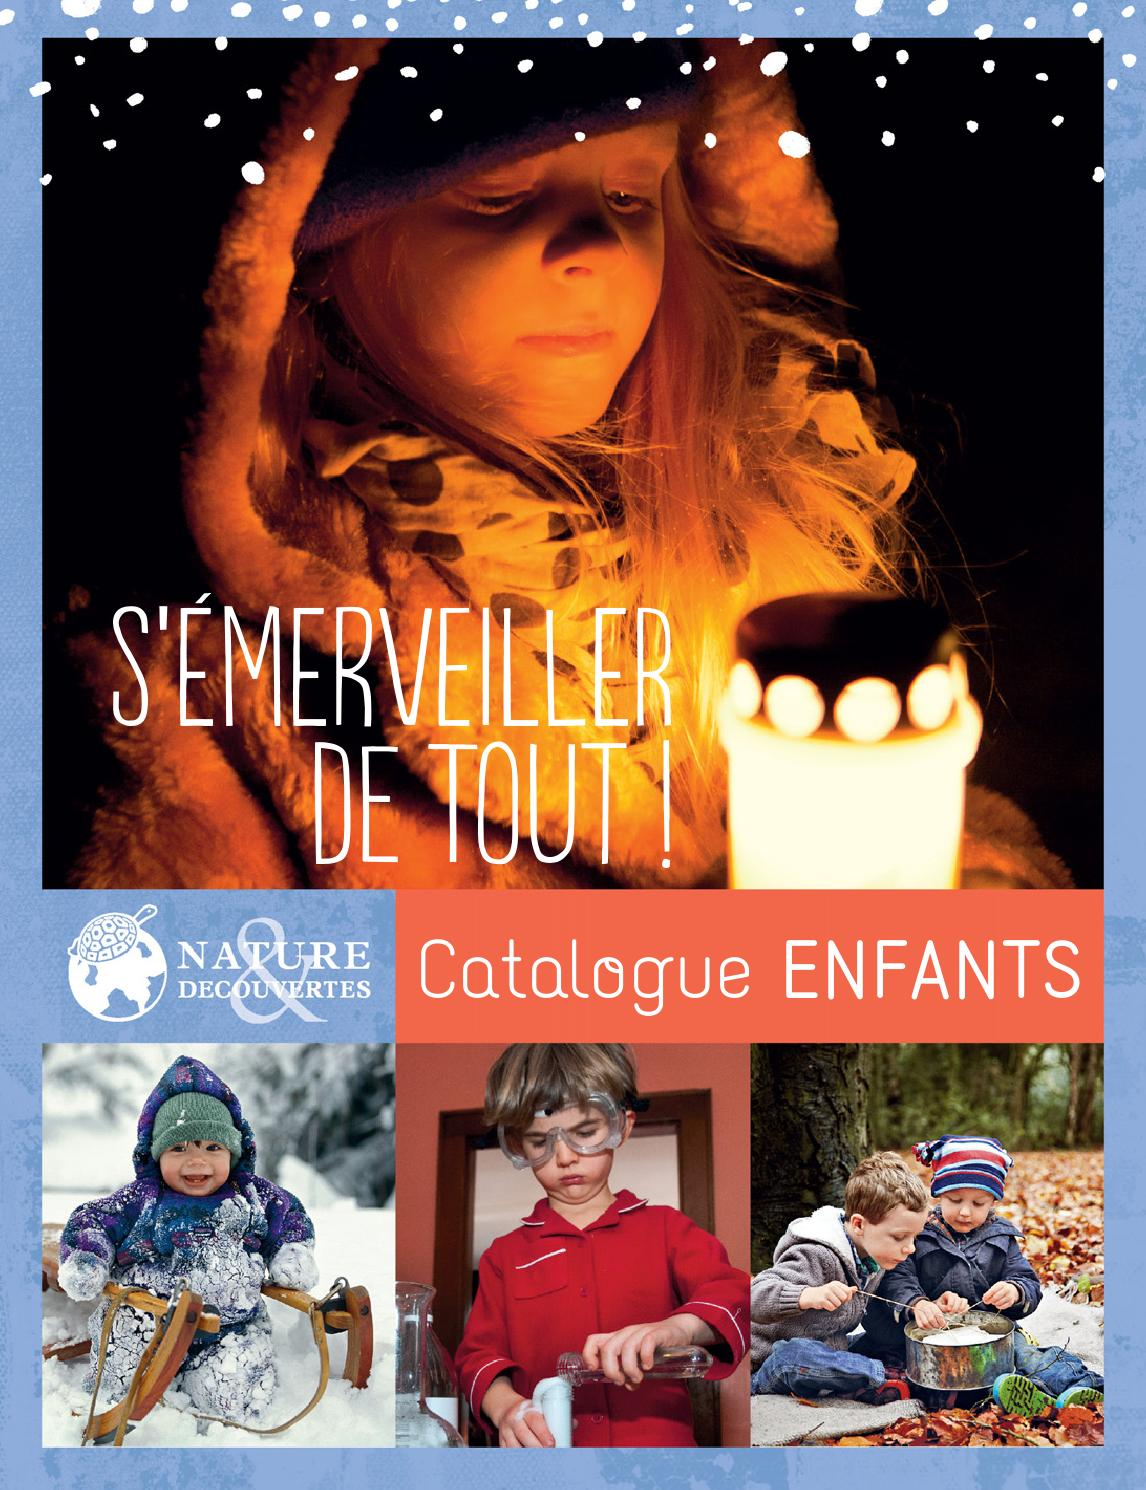 Catalogue Nature & Découvertes - Enfants 2013 by joe monroe - issuu